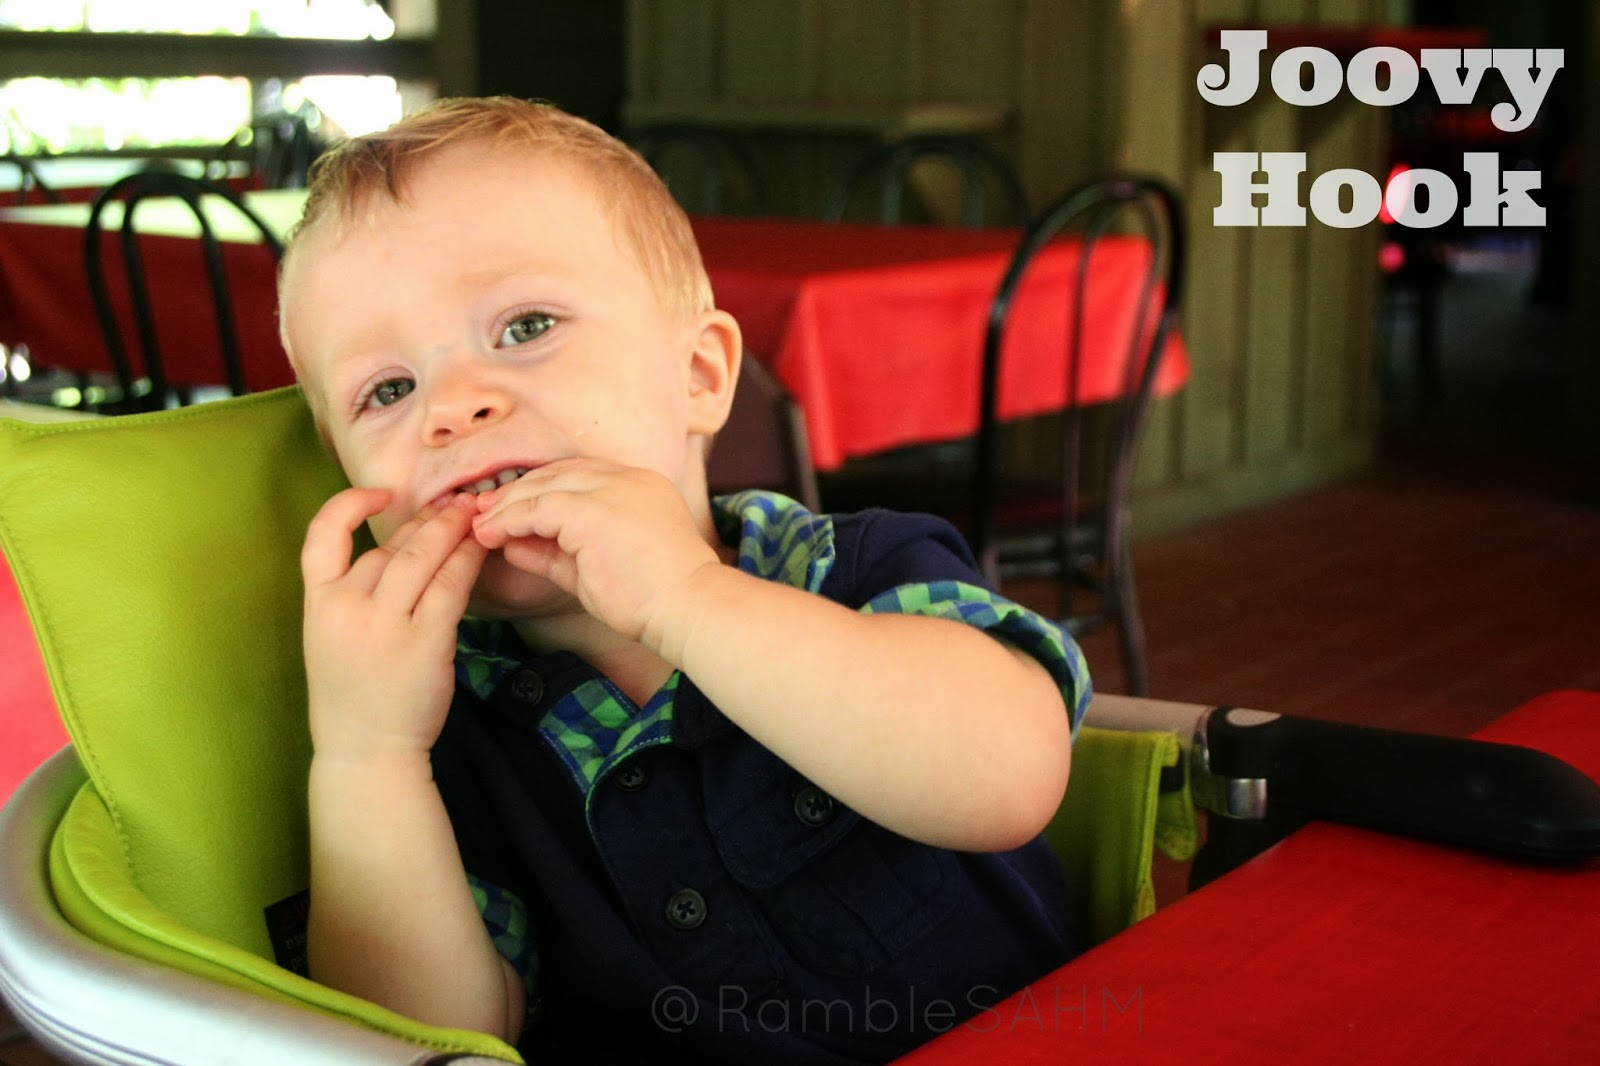 sc 1 st  Rambles of a SAHM & Joovy Hook Review ~ Clean Eating on the Go!